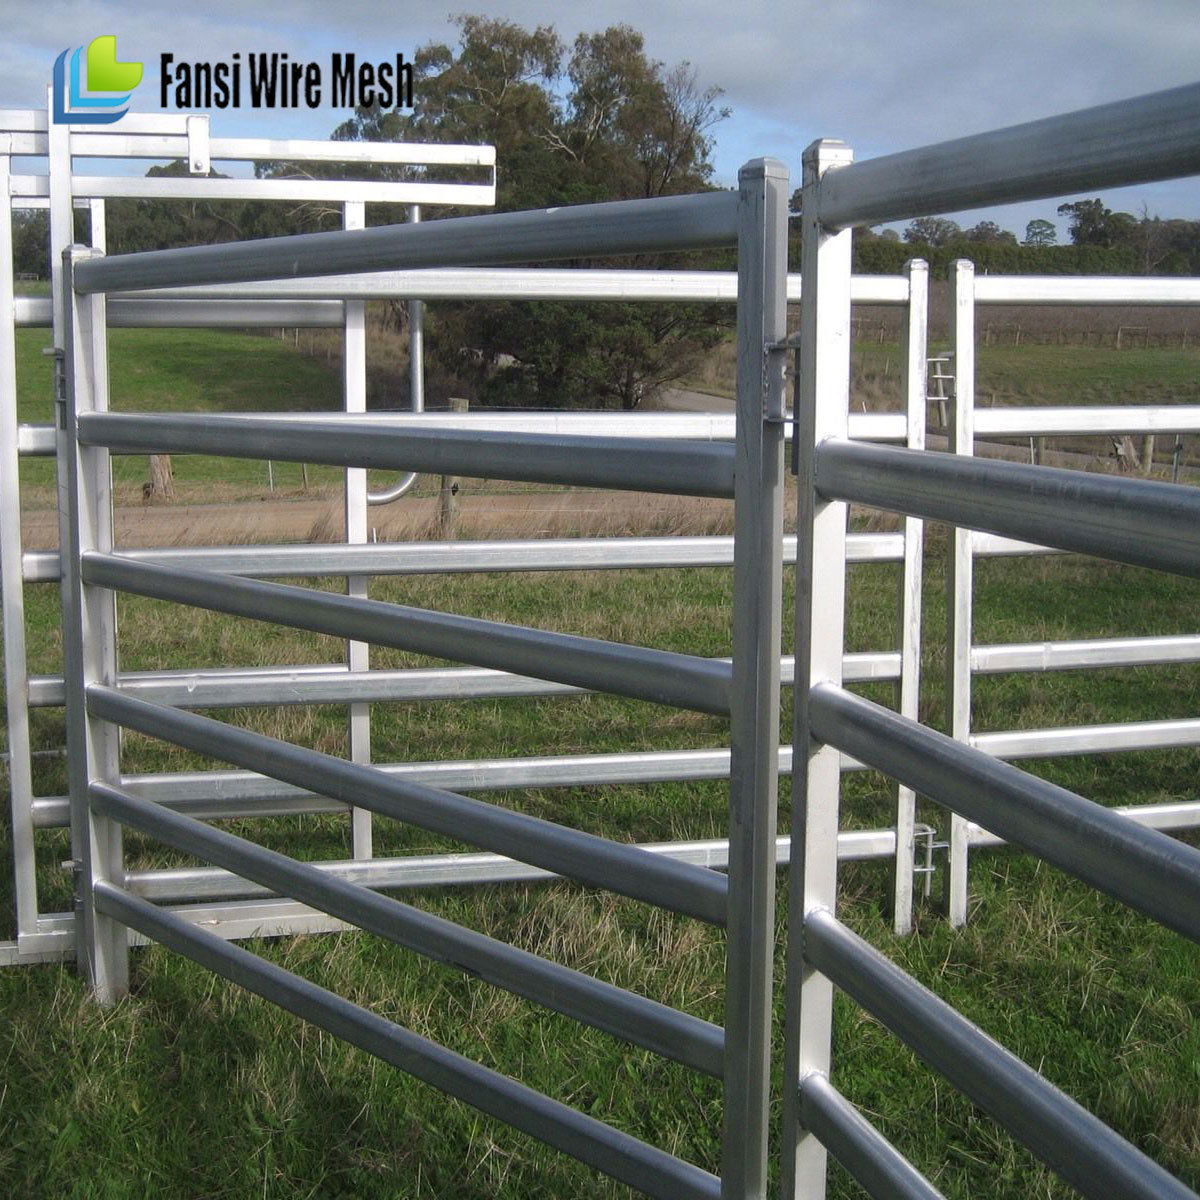 China Hot Dipped Galvanized Cattle Panels - China Cattle Panels ...